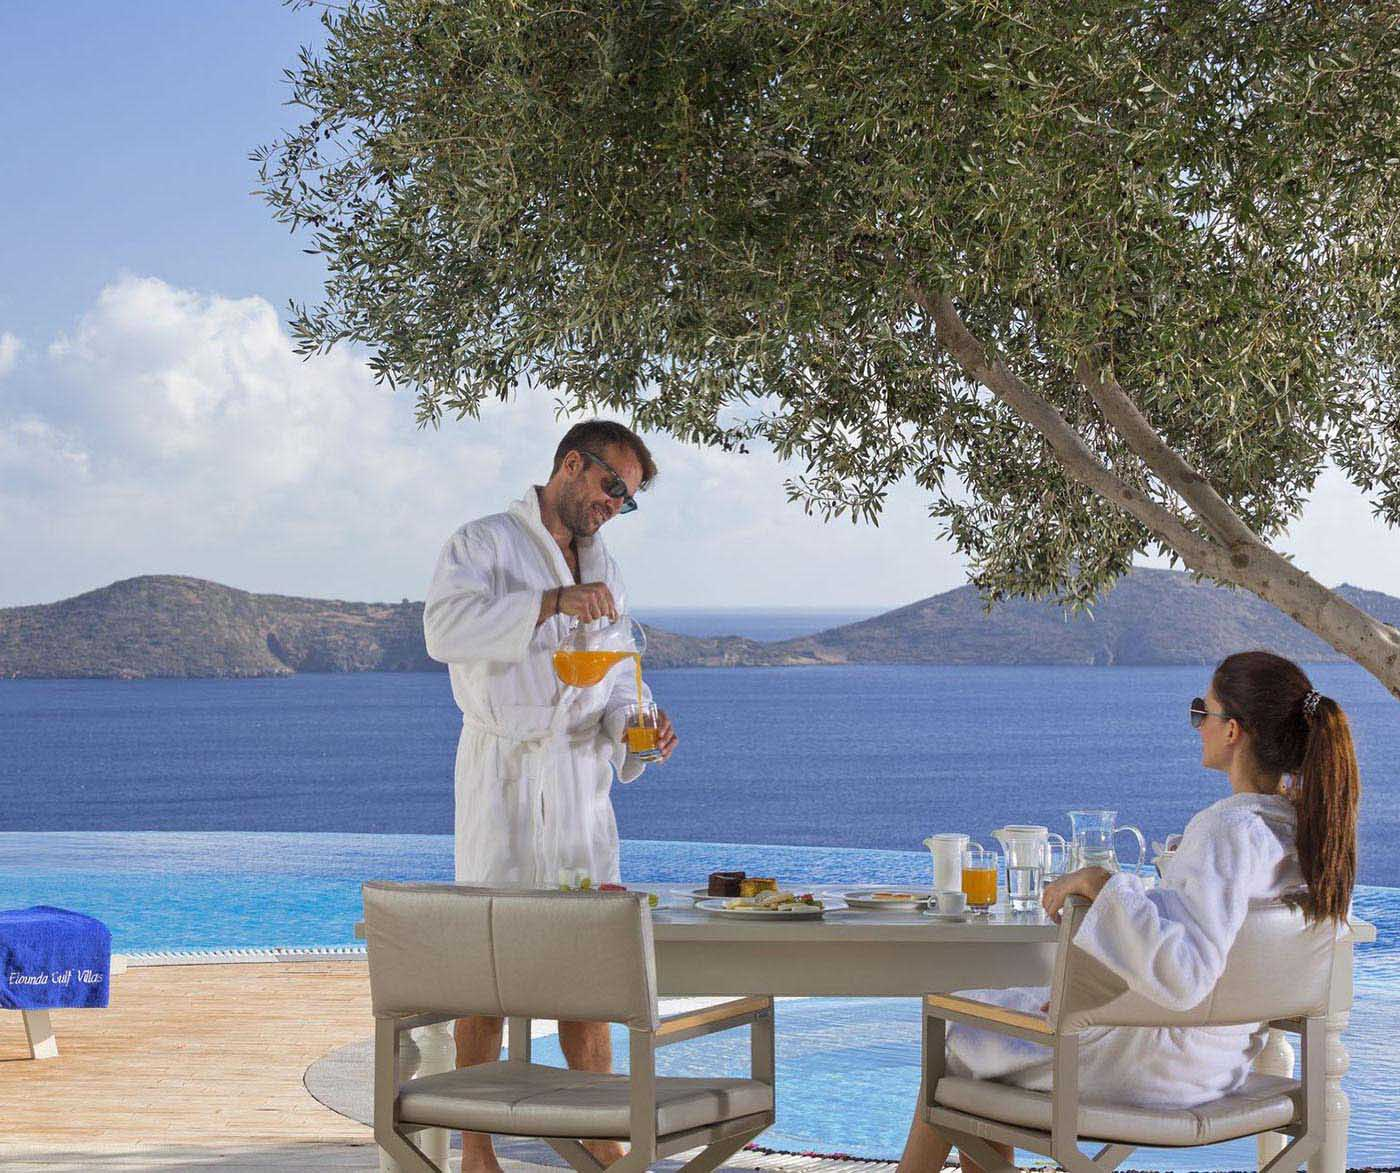 Fira - Firostefani hotels & resorts, 50% discount for early bookings, Fira - Firostefani, Santorini, Cyclades Islands, Greece